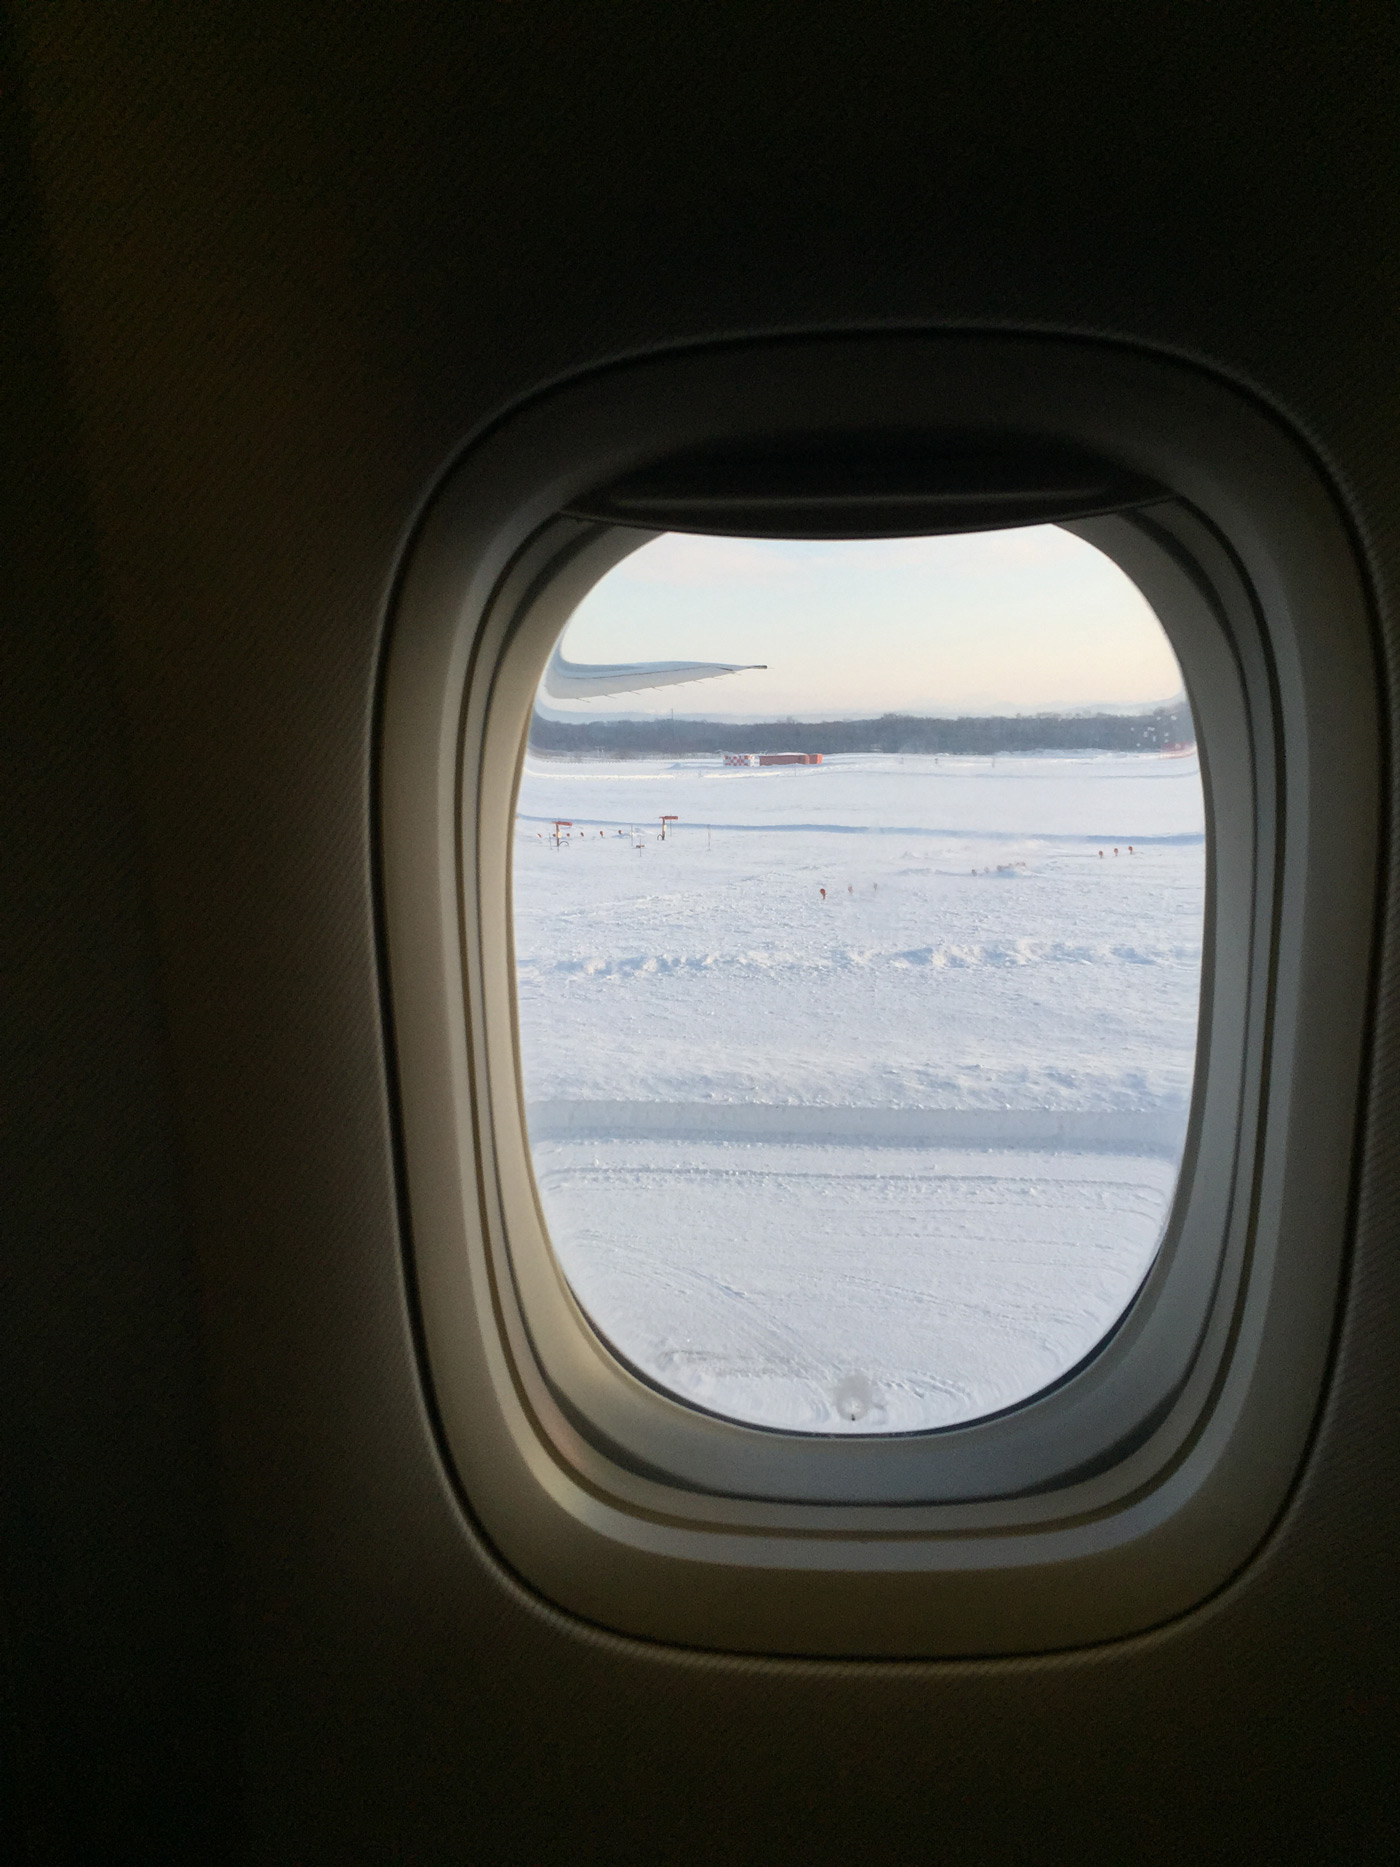 This much snow at the airport has to be a good sign